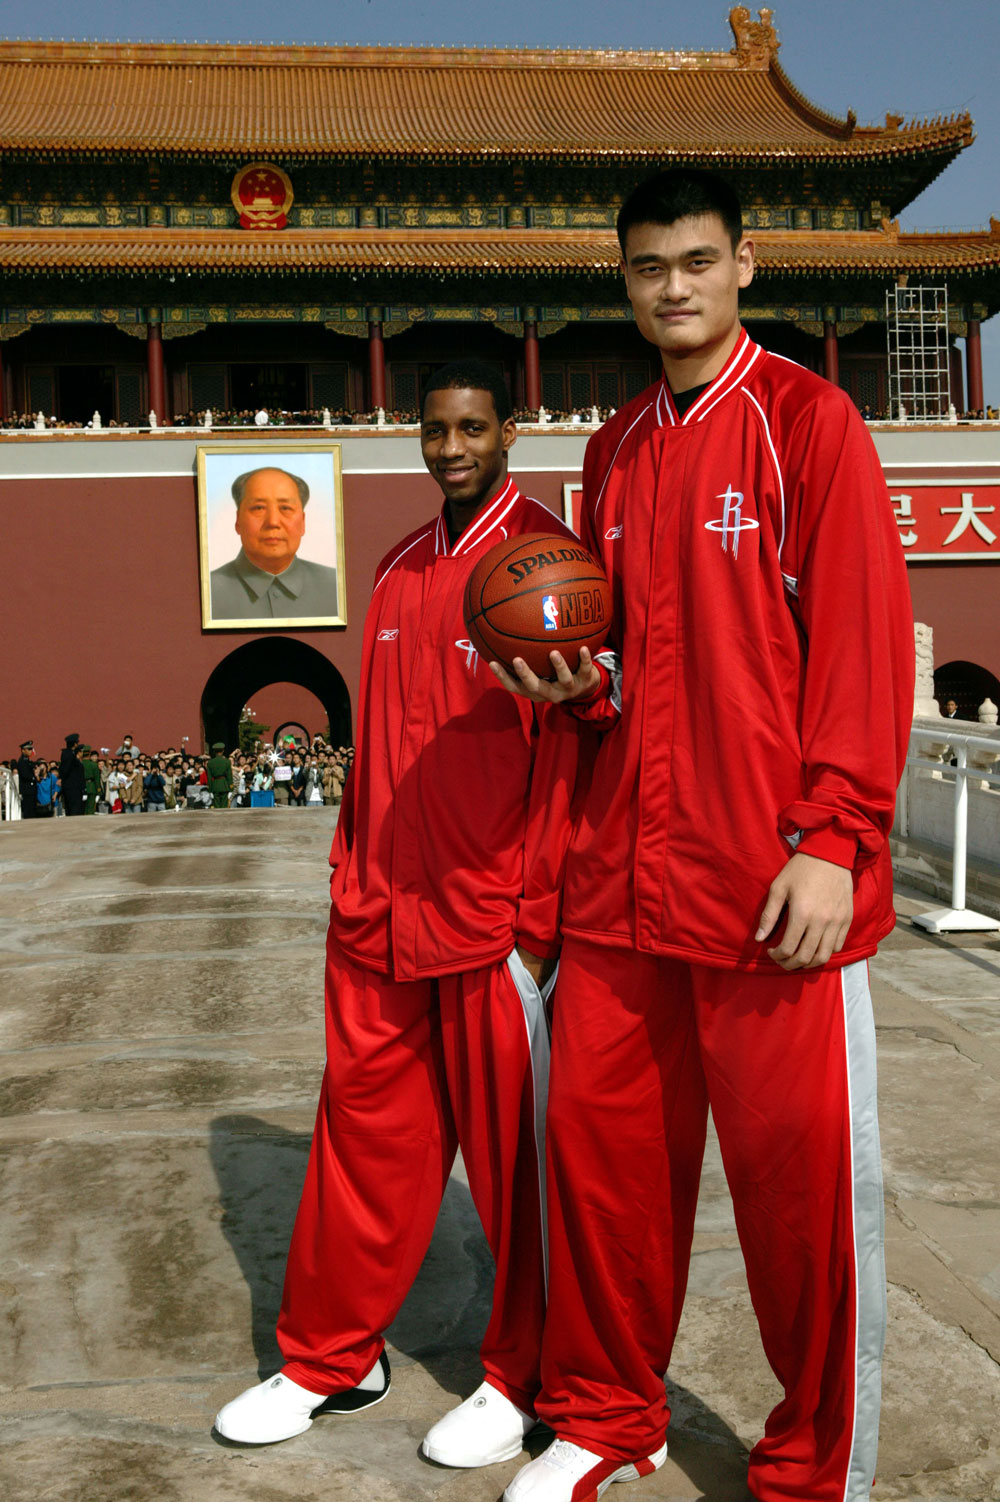 Yao Ming and Tracy McGrady of the Houston Rockets visit Beijing in 2004